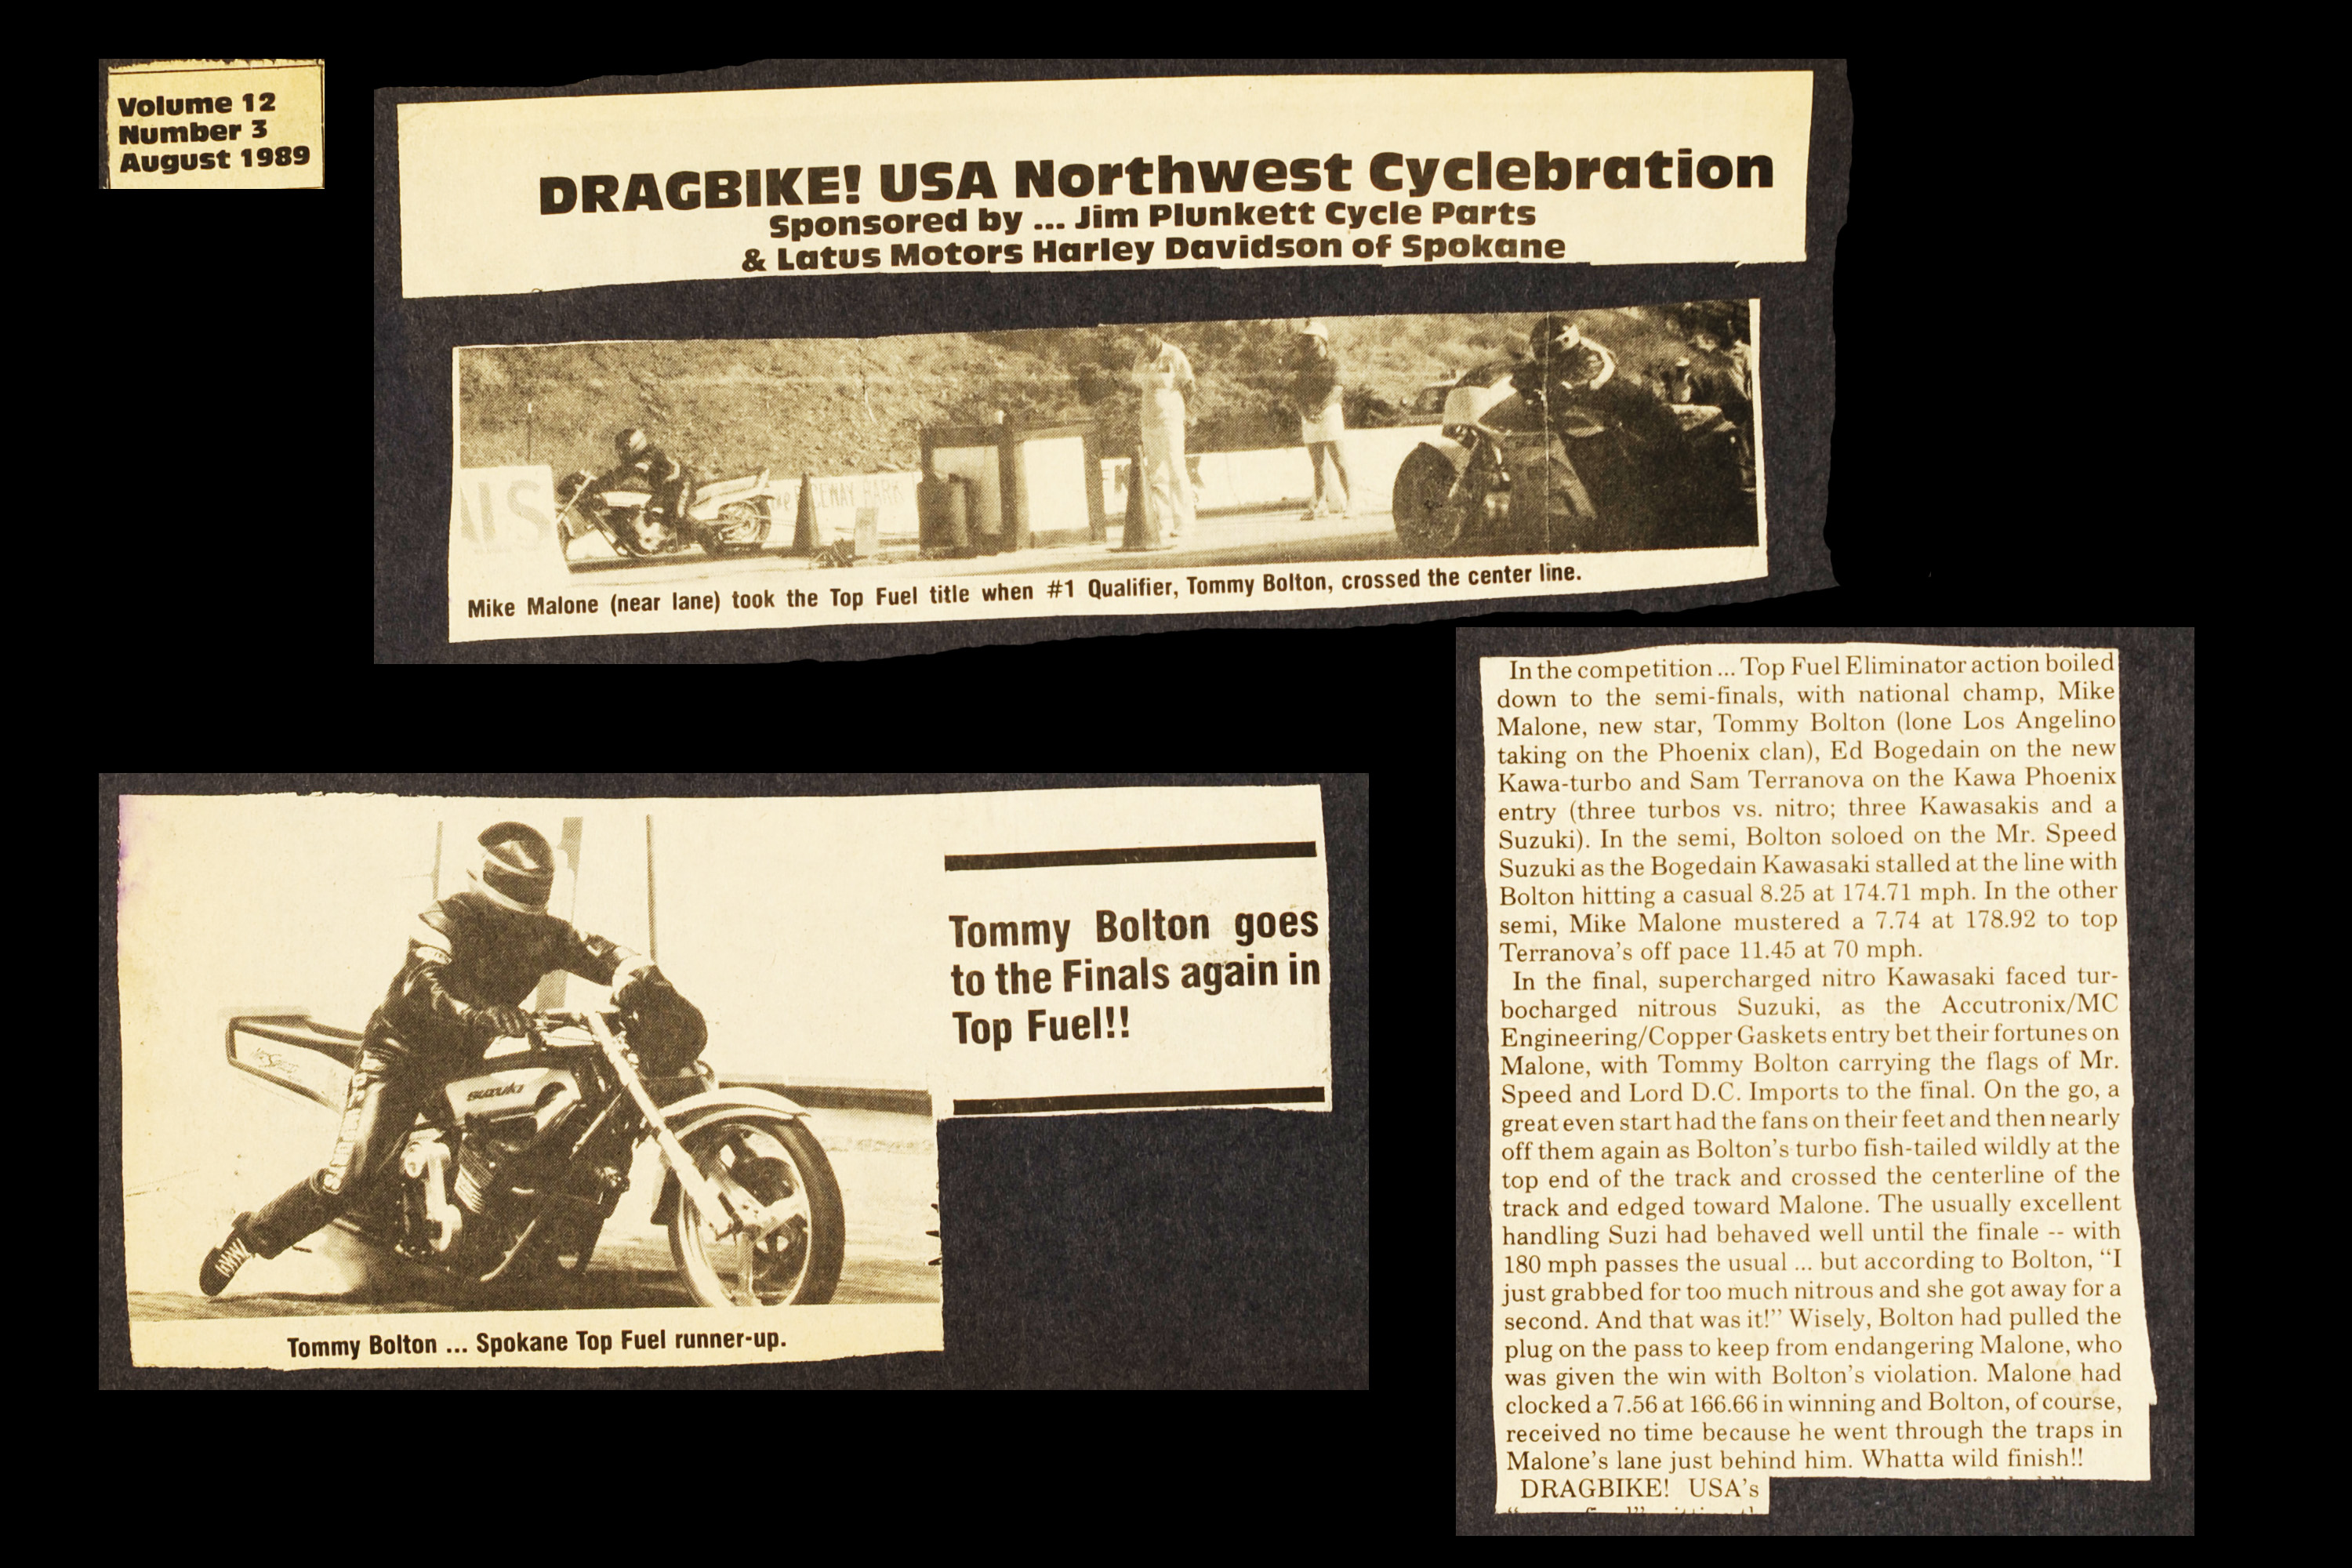 Tommy Bolton drag racing in Dragbike USA article